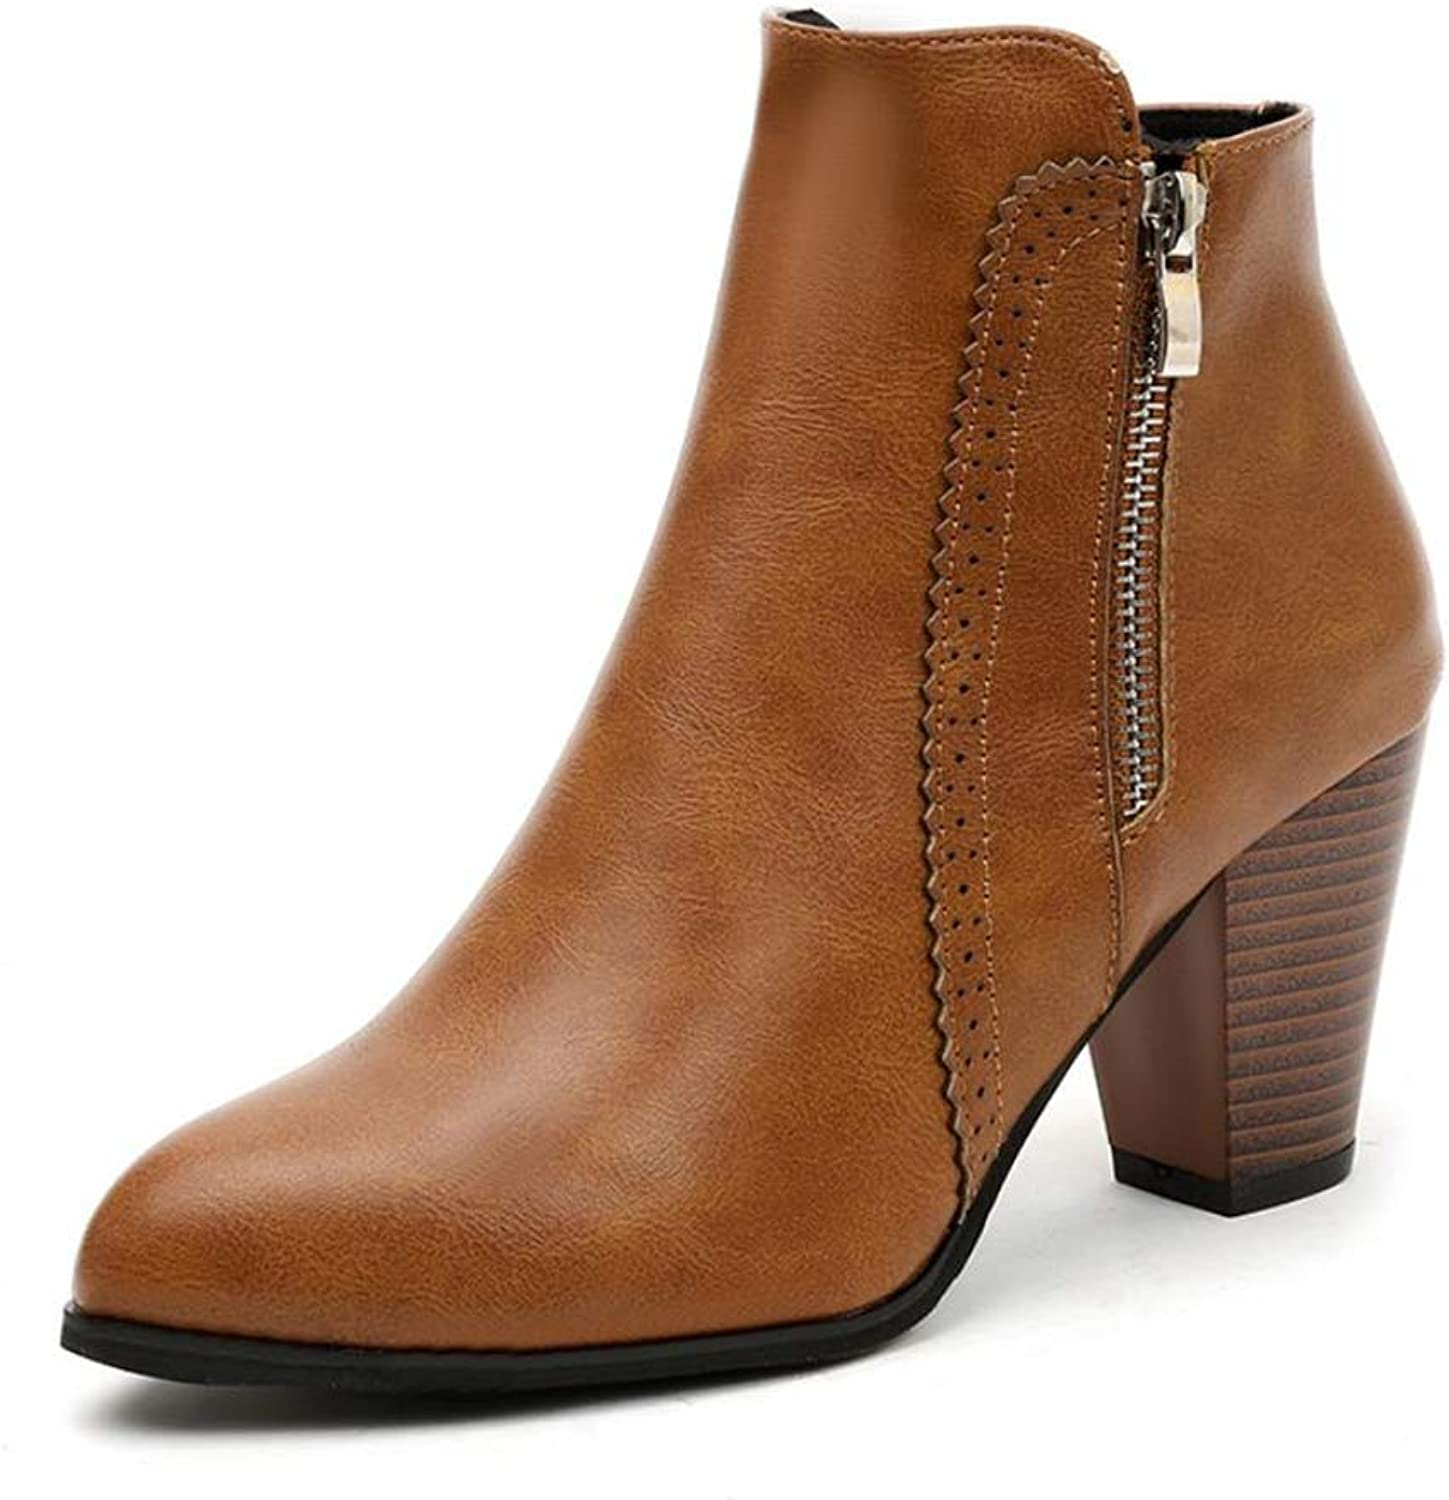 Cici shoes Women's Faux Suede Slip On V Cut Ankle Boots Side Zip Chunky Block Heel Ankle Booties